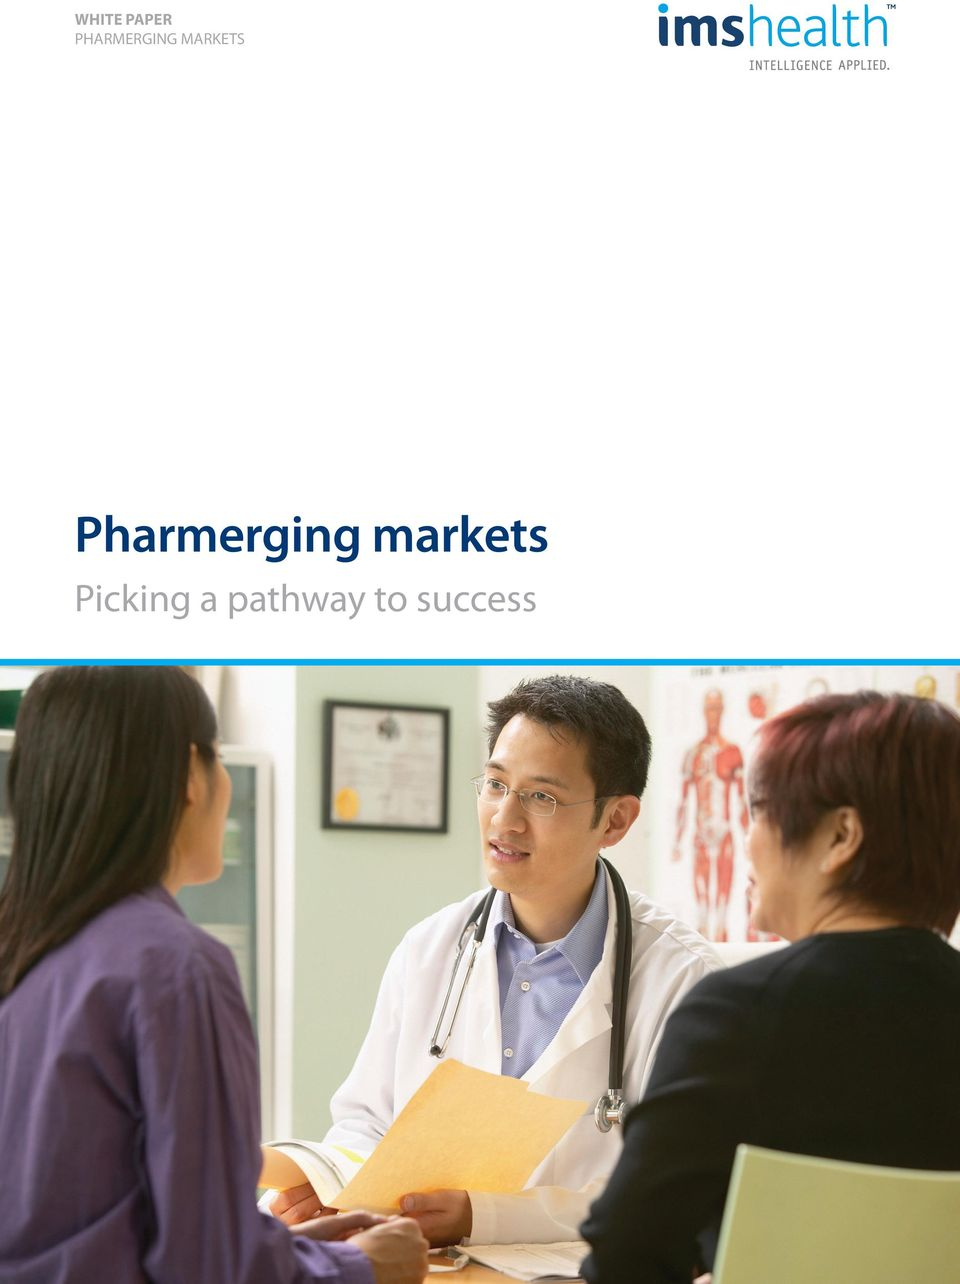 Pharmerging markets